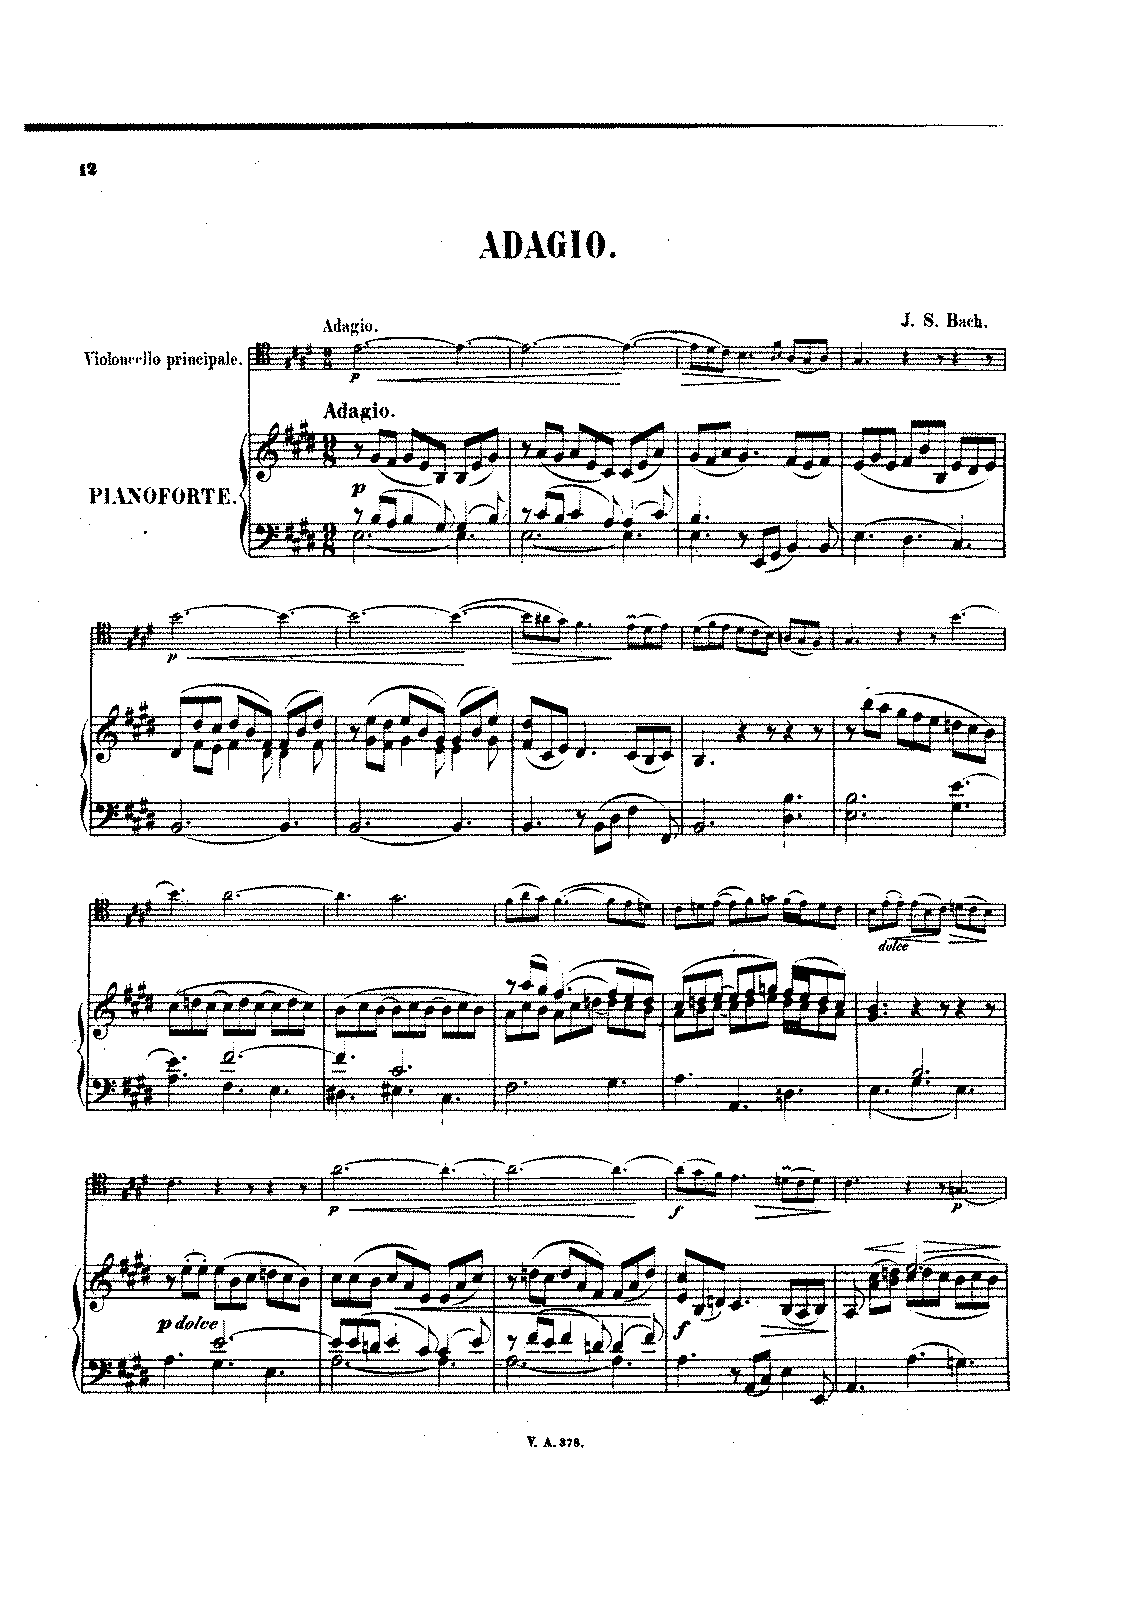 PMLP133263-Bach - Adagio for Cello and Piano score.pdf